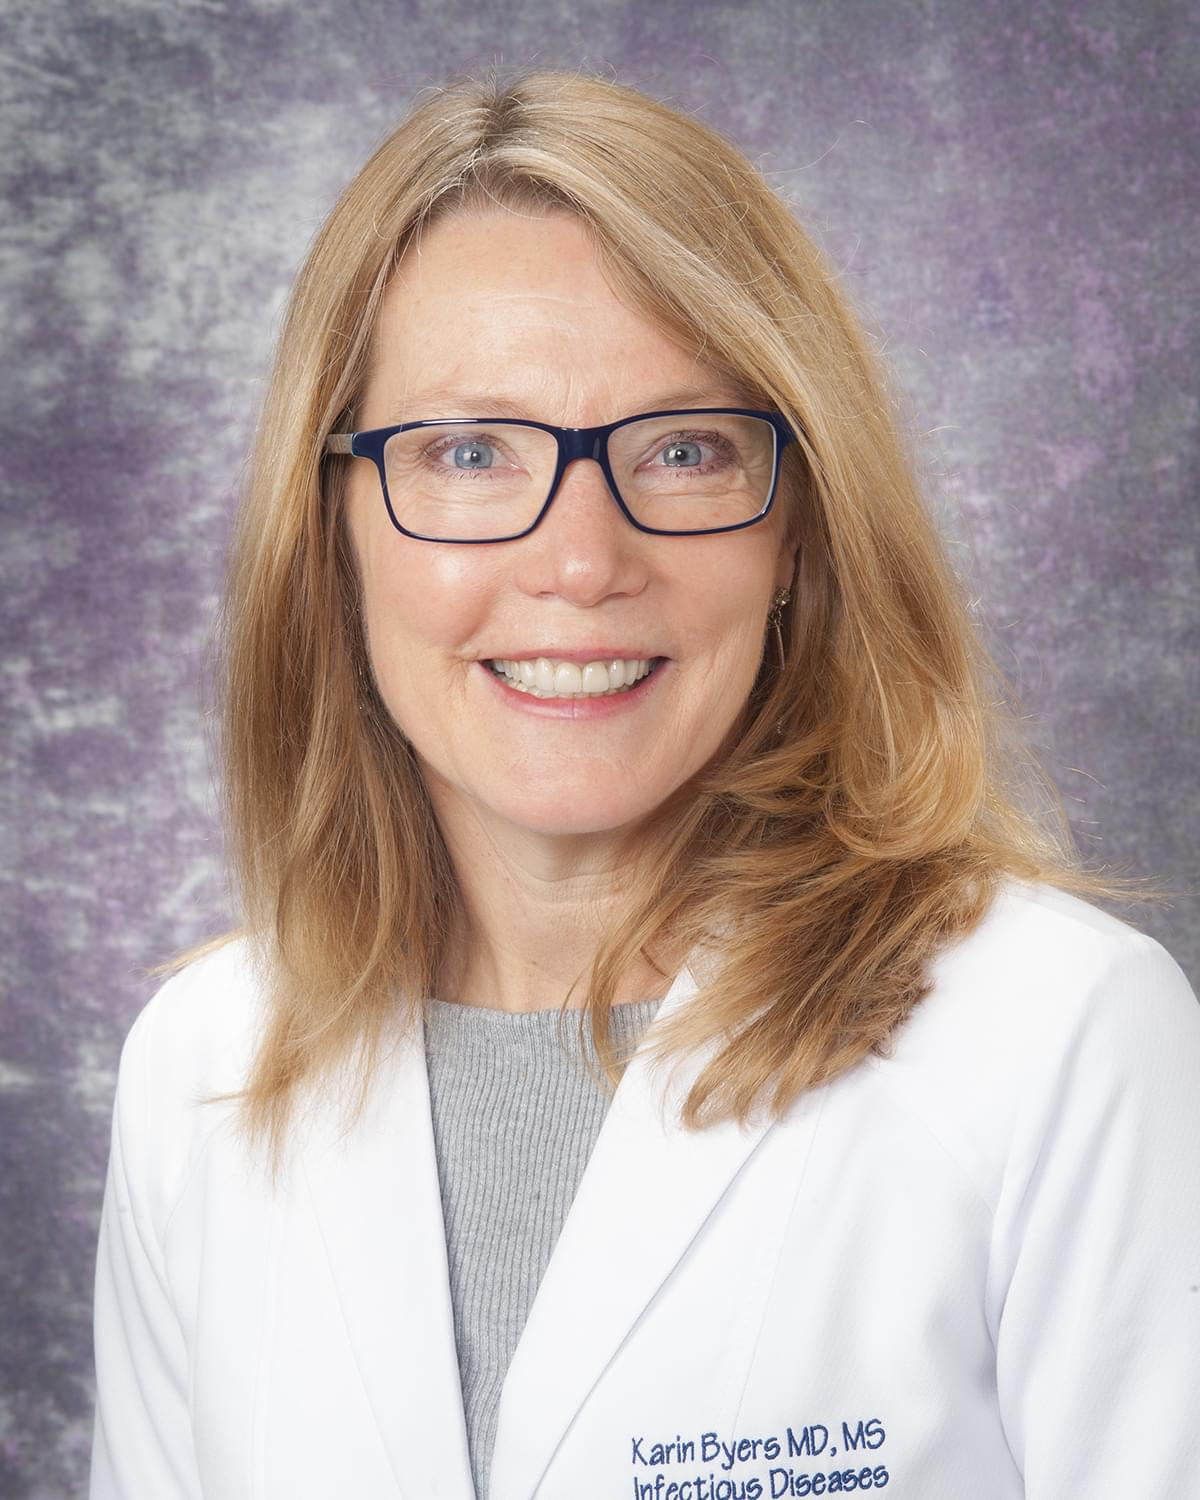 Dr. Karin Byers, UPMC Infection Disease Specialist